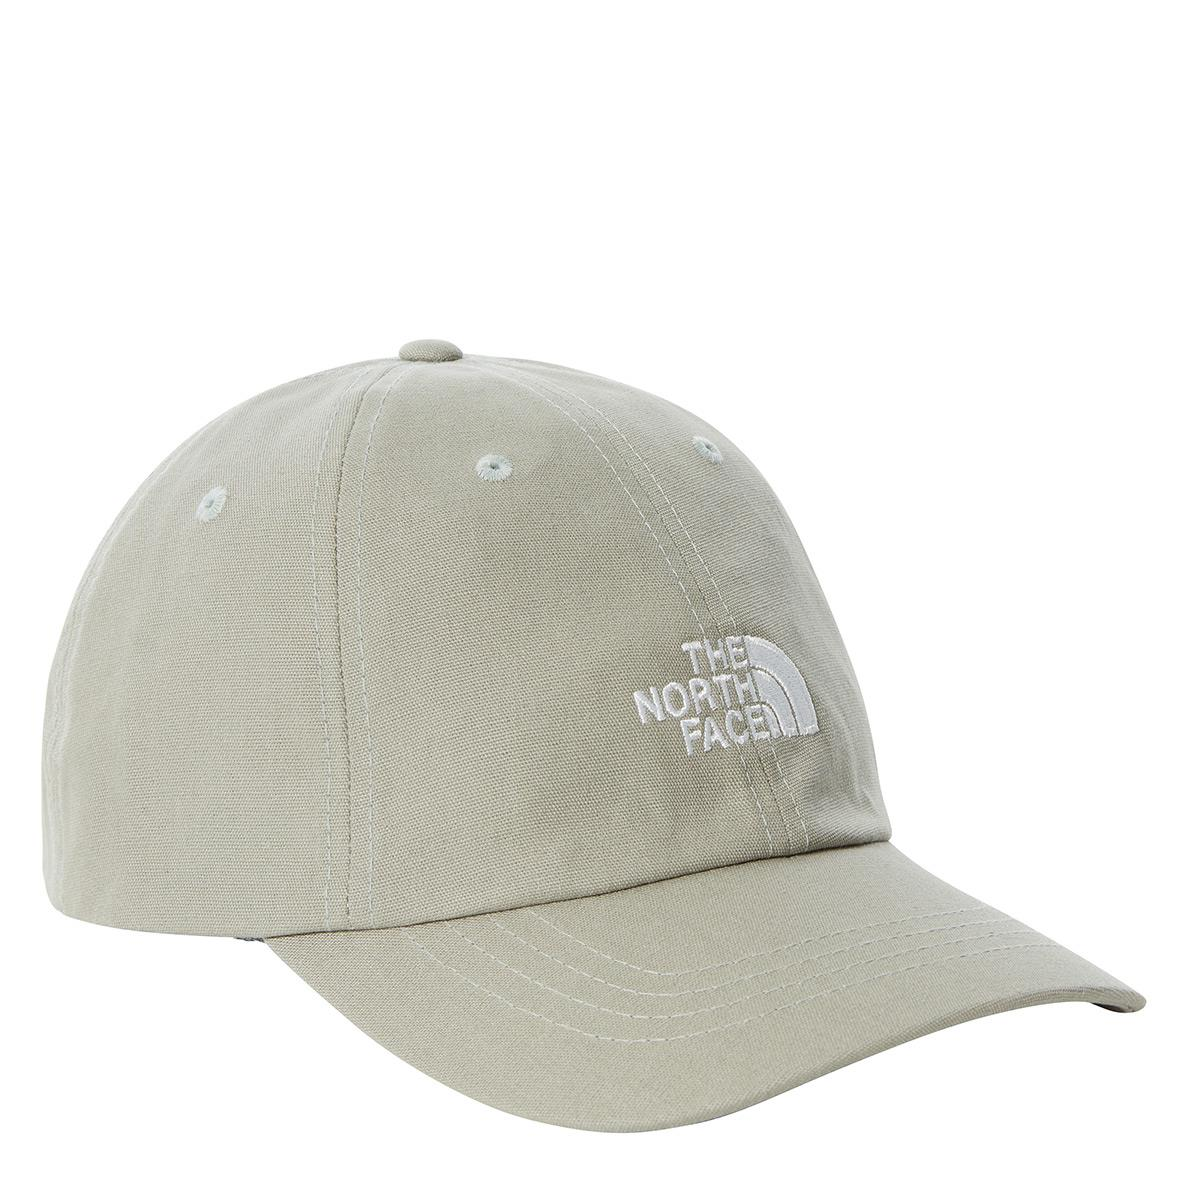 The North Face  NOR Şapka  Unisex NF0A3SH3HDF1